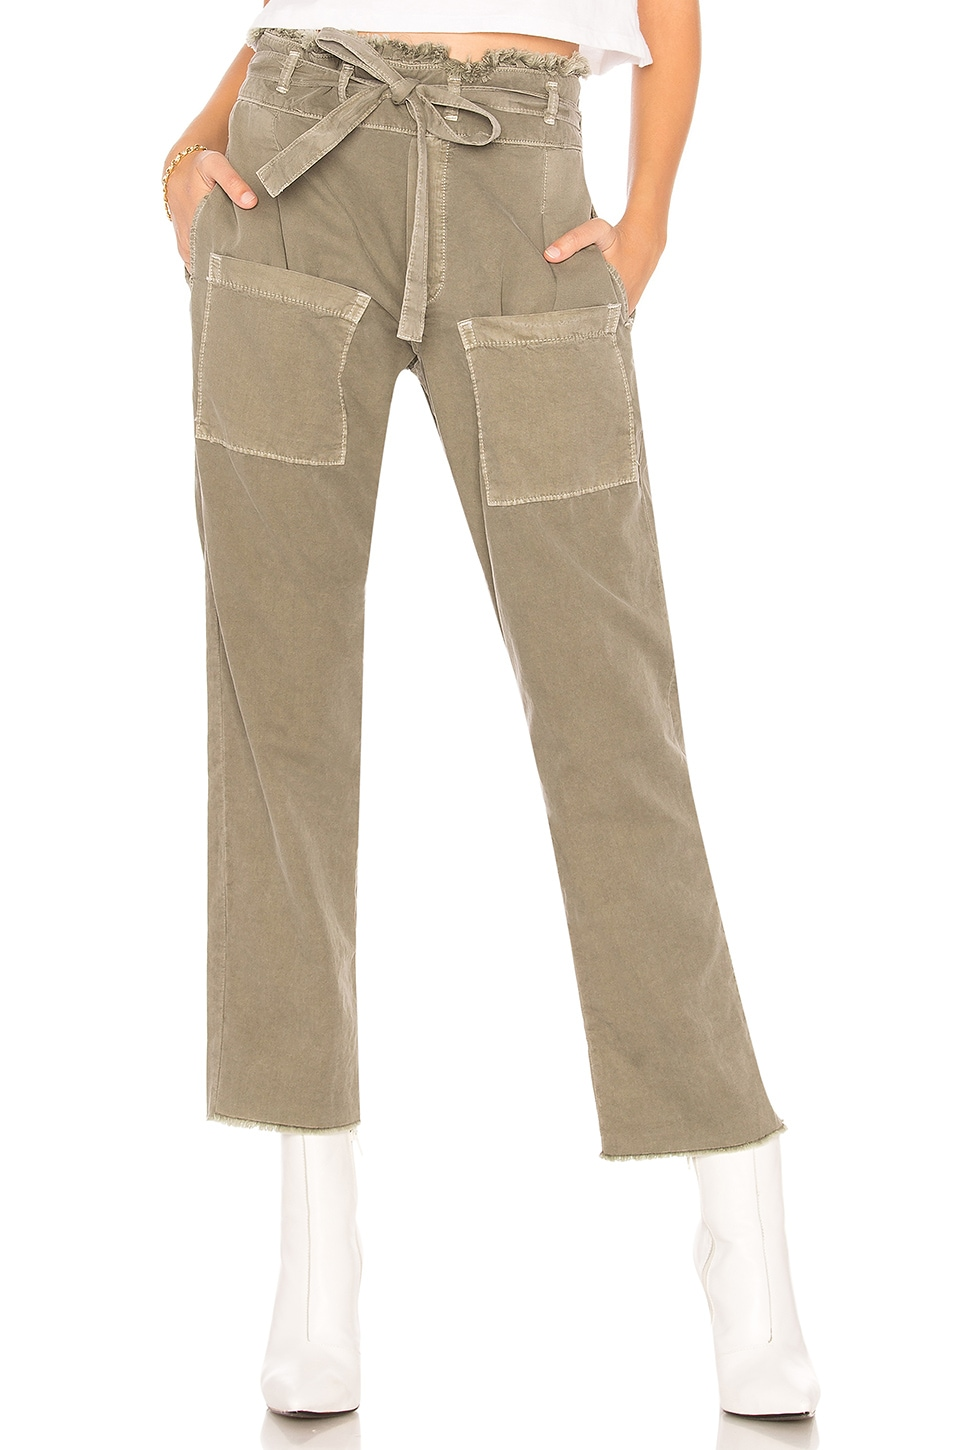 NSF Faro Cropped Pant in Pigment Cargo